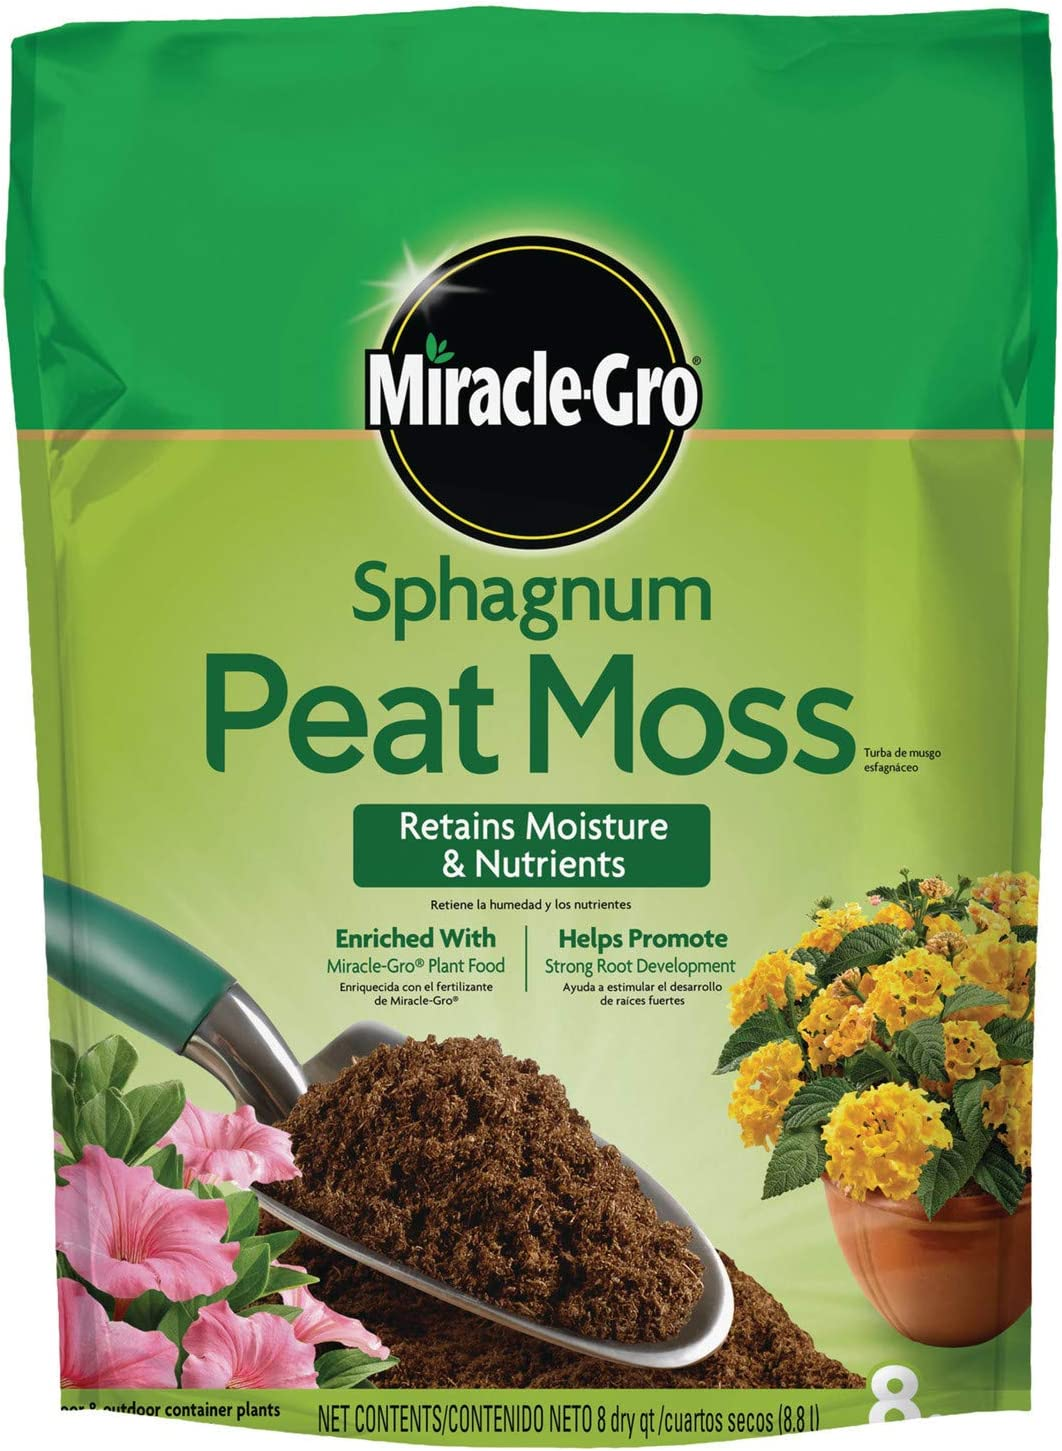 Miracle-Gro 85278437 Northeastern & Midwestern States Sphagnum Peat Moss, 8-Quart (Currently Ships to Select Nor, 1 Pack, N